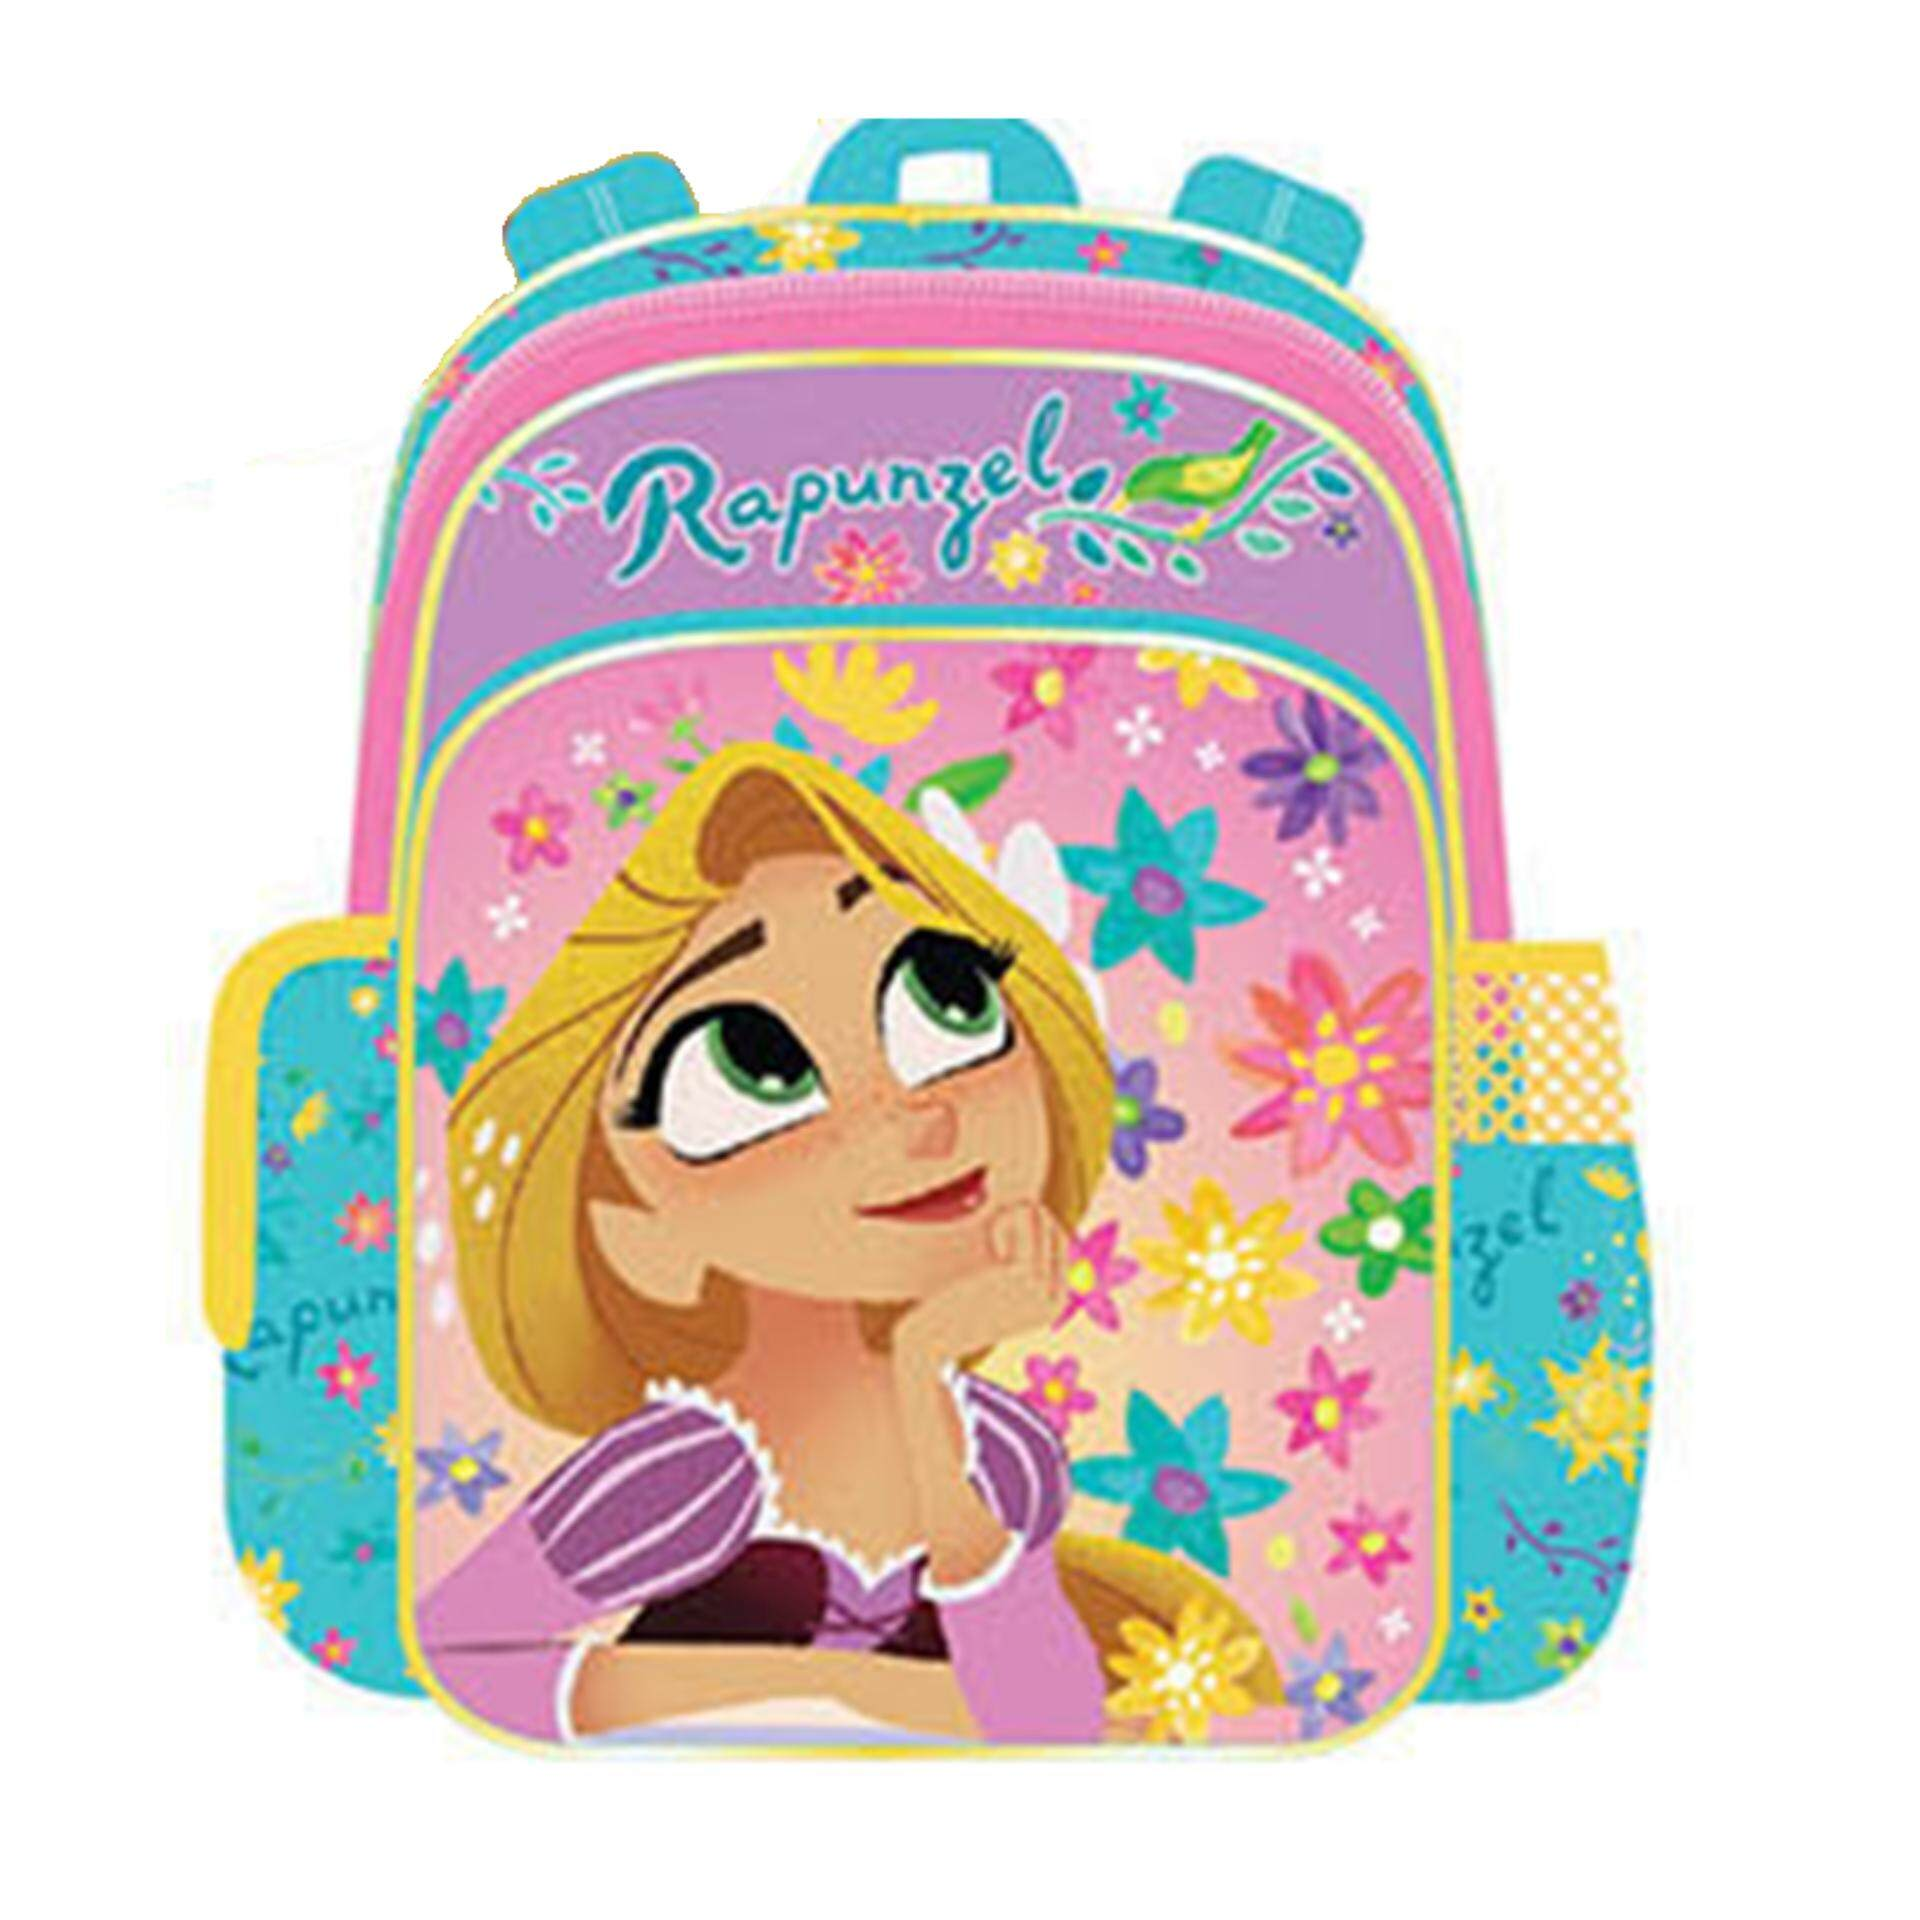 Disney Princess Tangled Backpack School Bag 10 Inches - Pink Colour